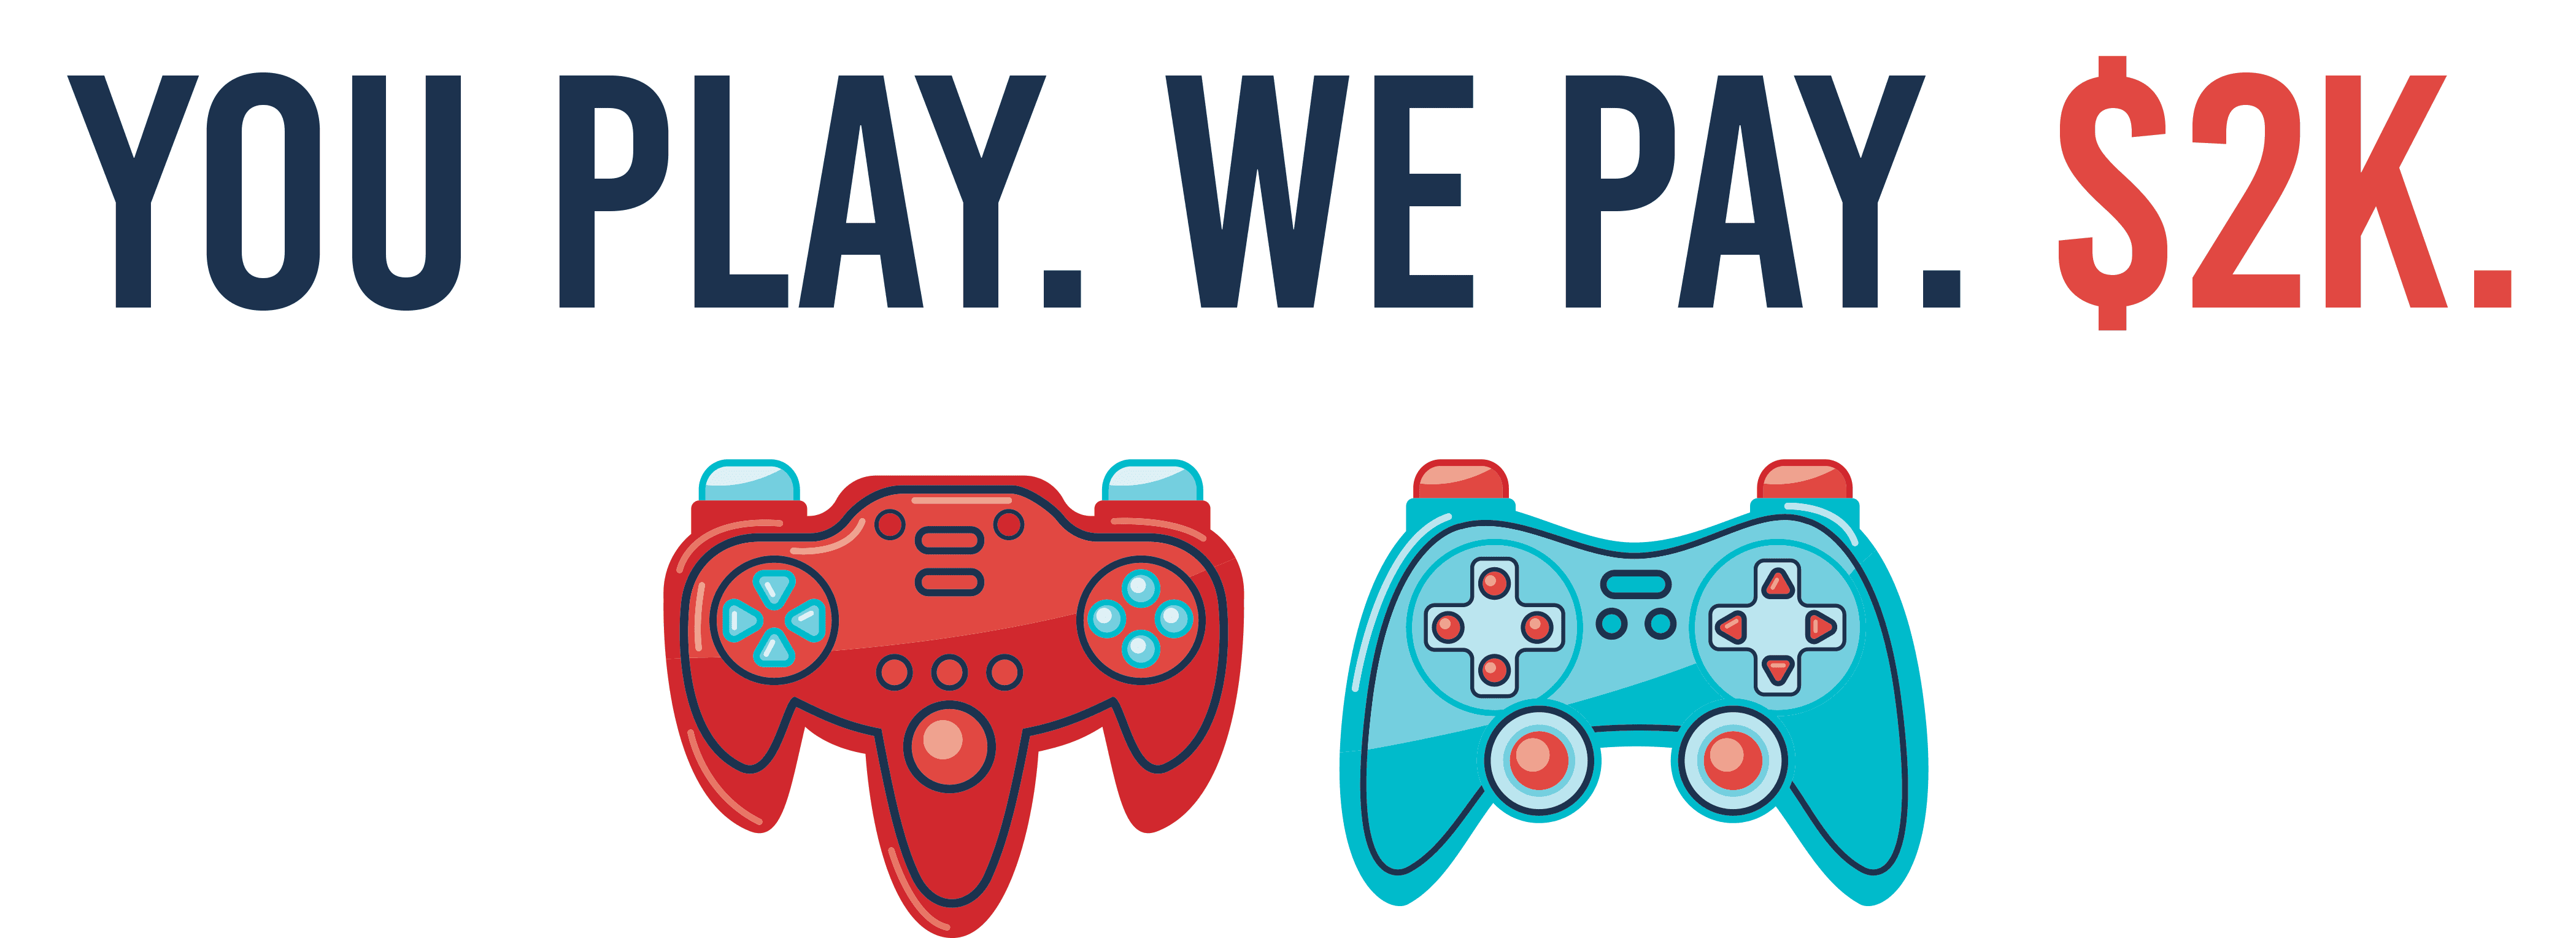 You Play. We Pay. $2k.